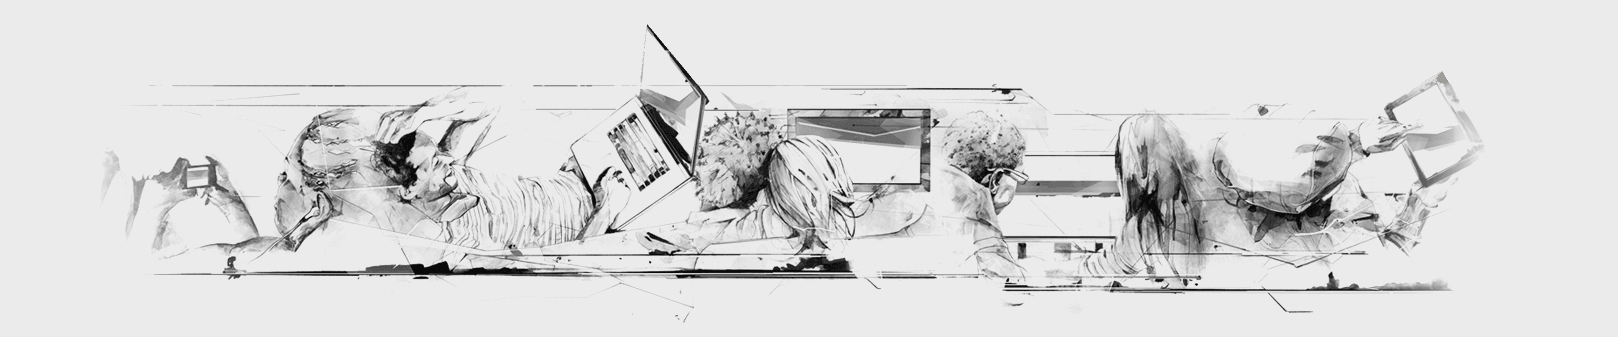 black and white sketched image with folks relaxing in couch